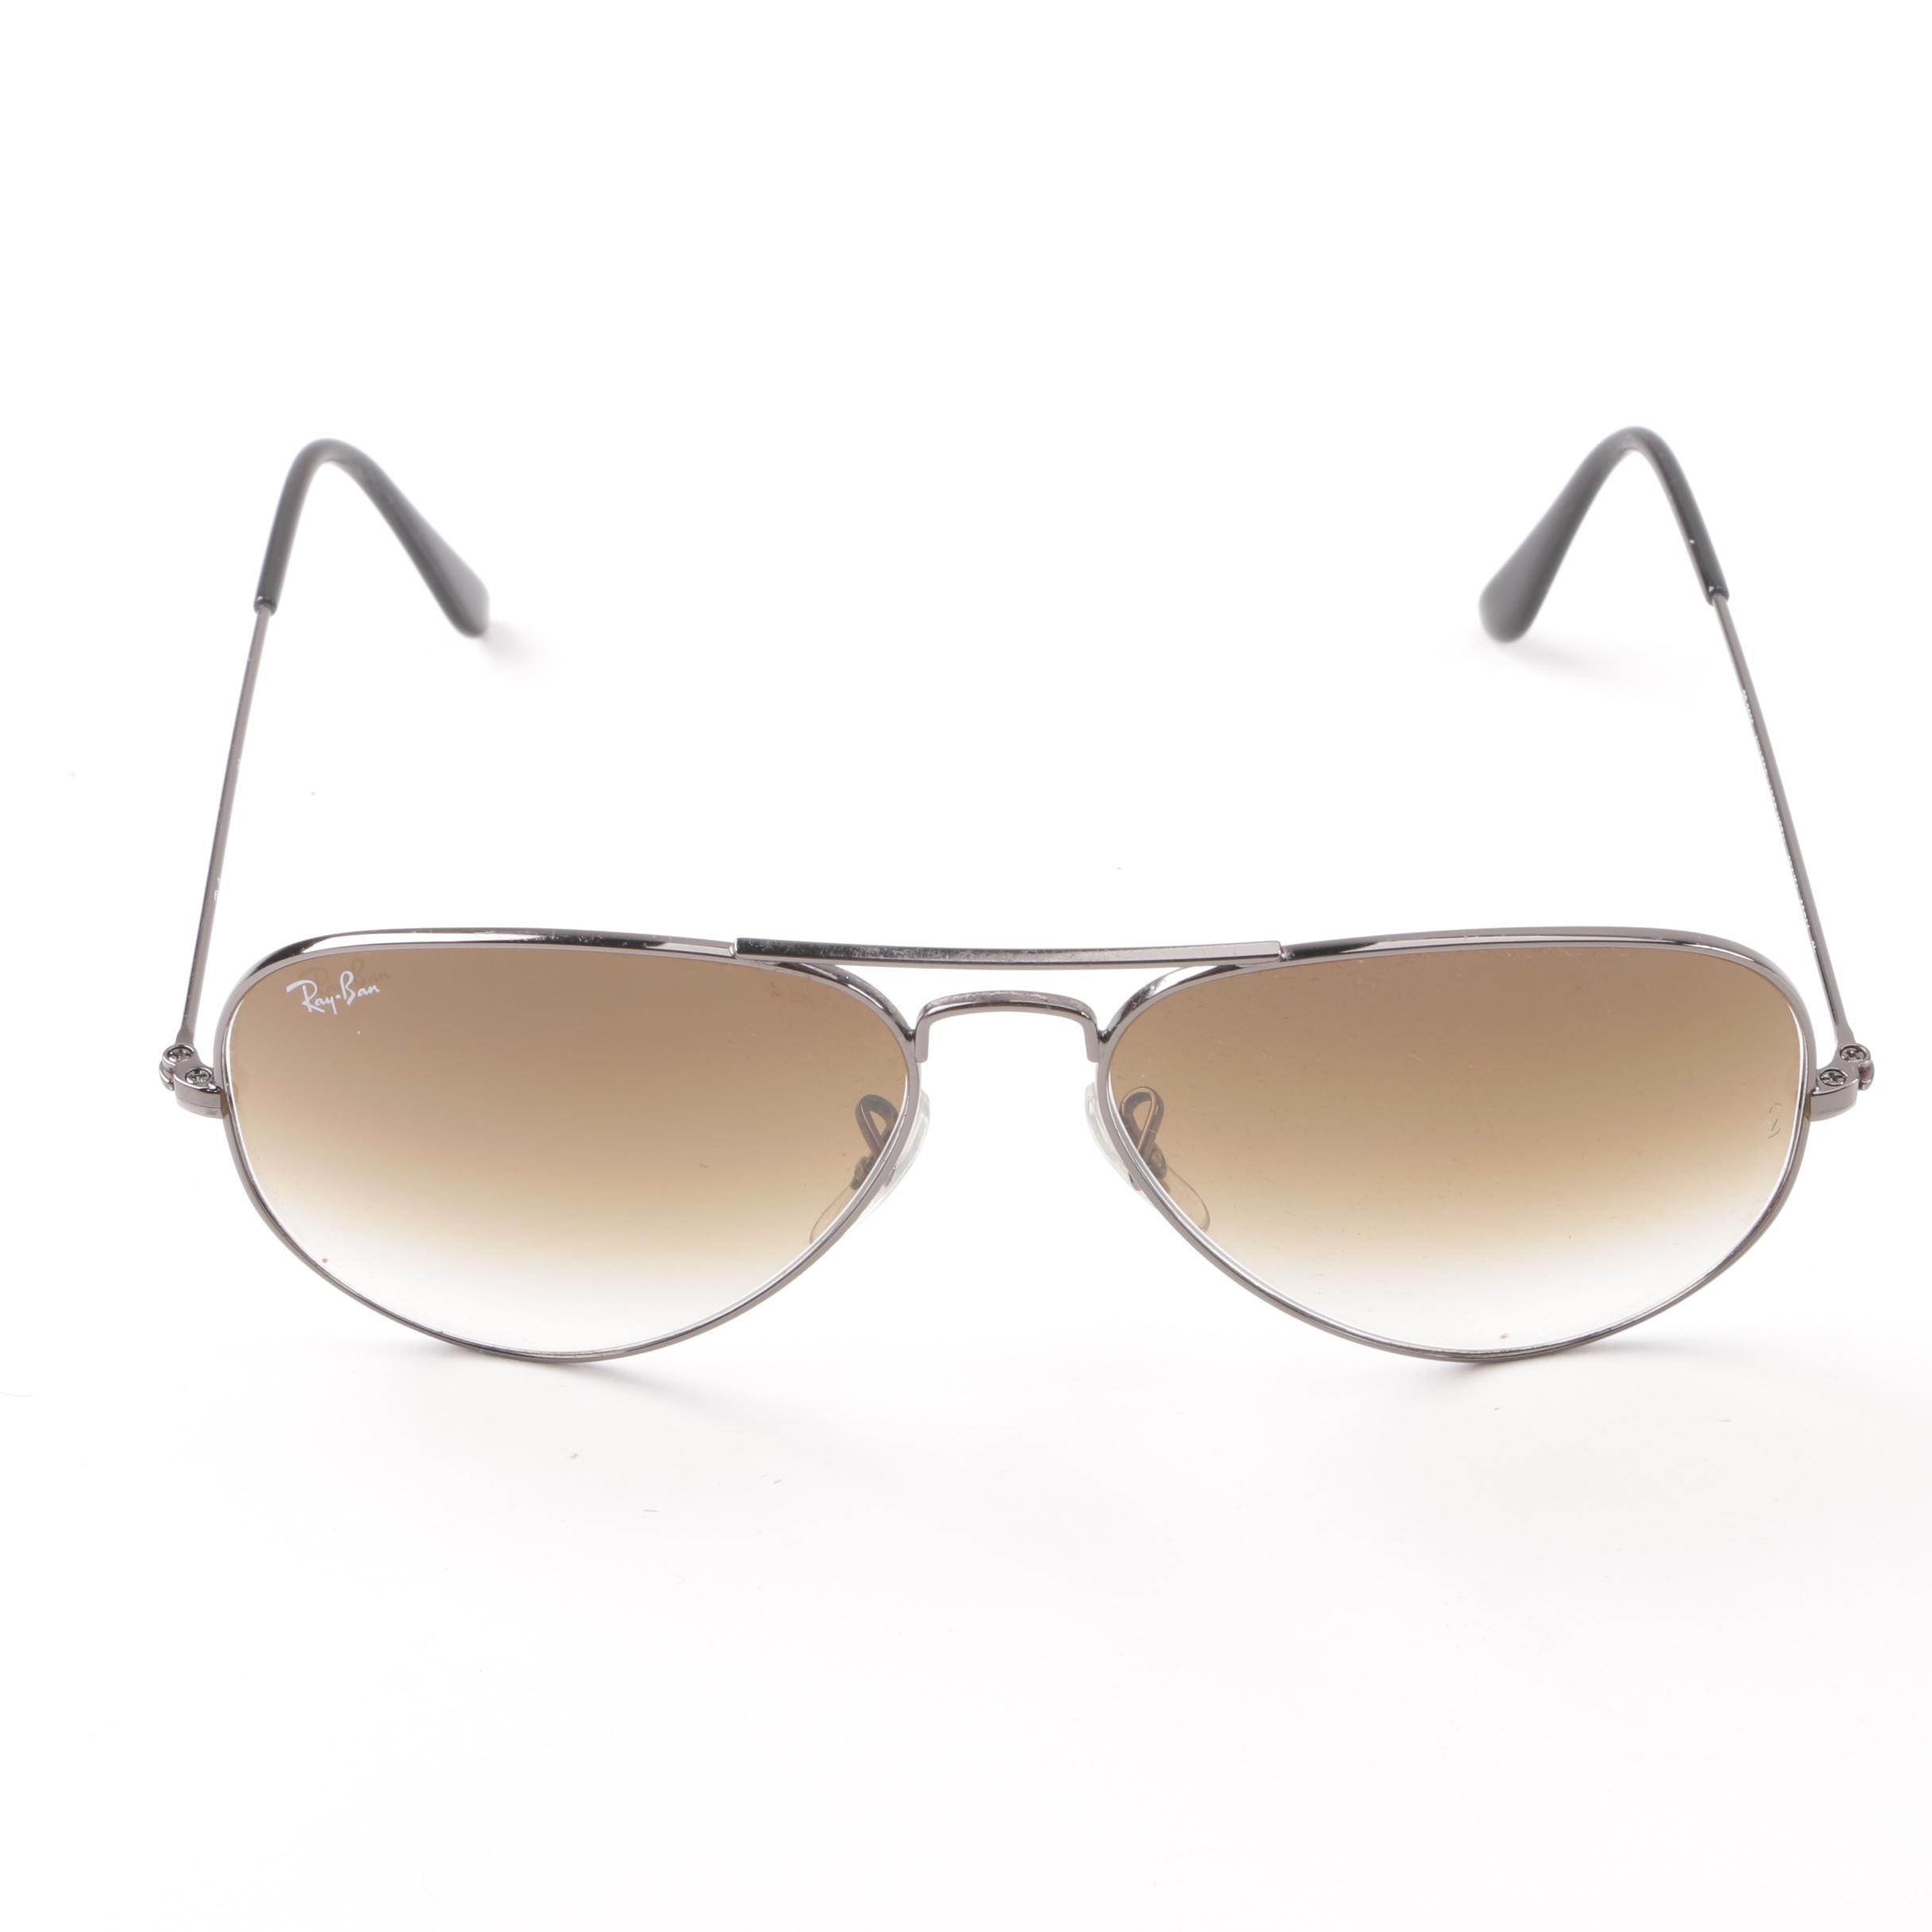 Ray-Ban RB 3025 Aviator Large Metal Sunglasses with Case